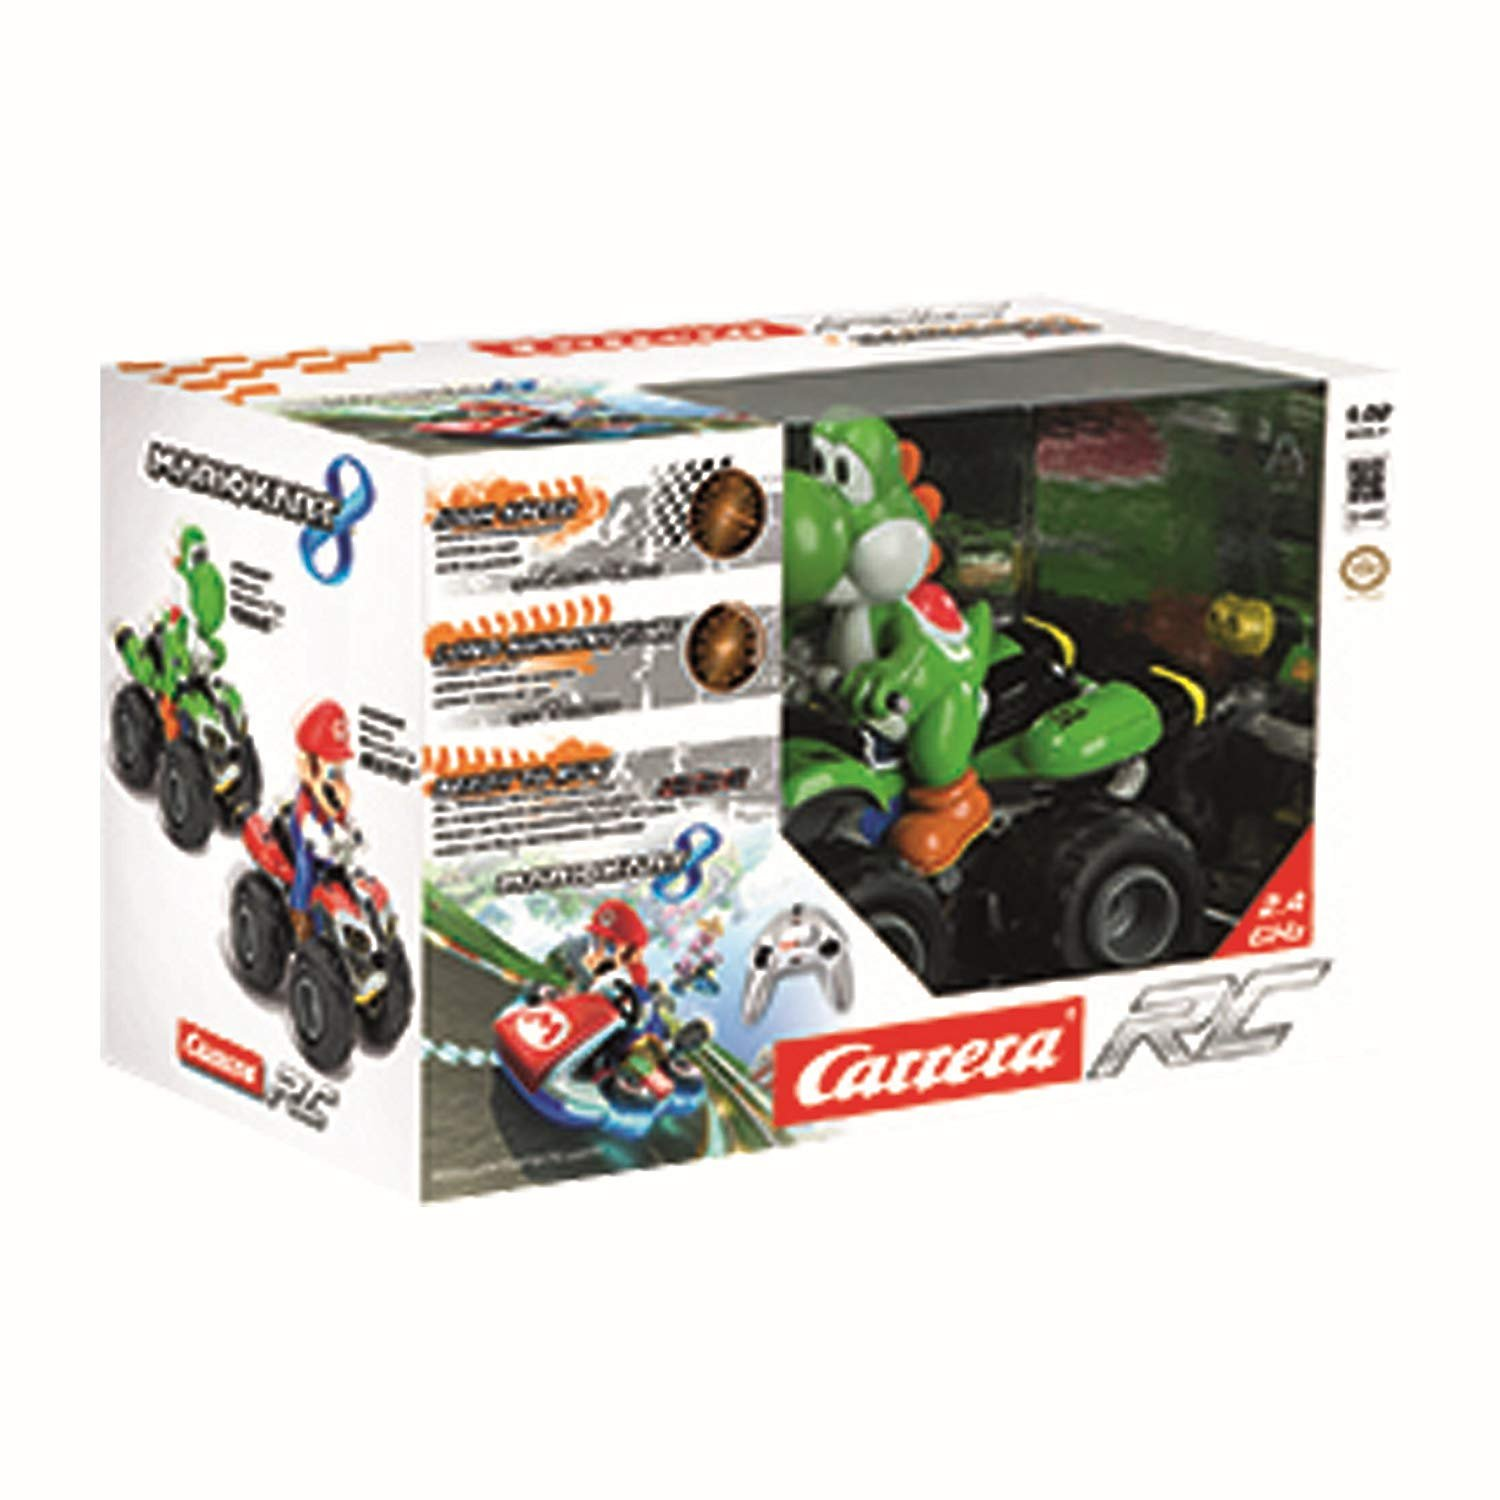 Carrera Mario Kart RC 2.4 GHz Car